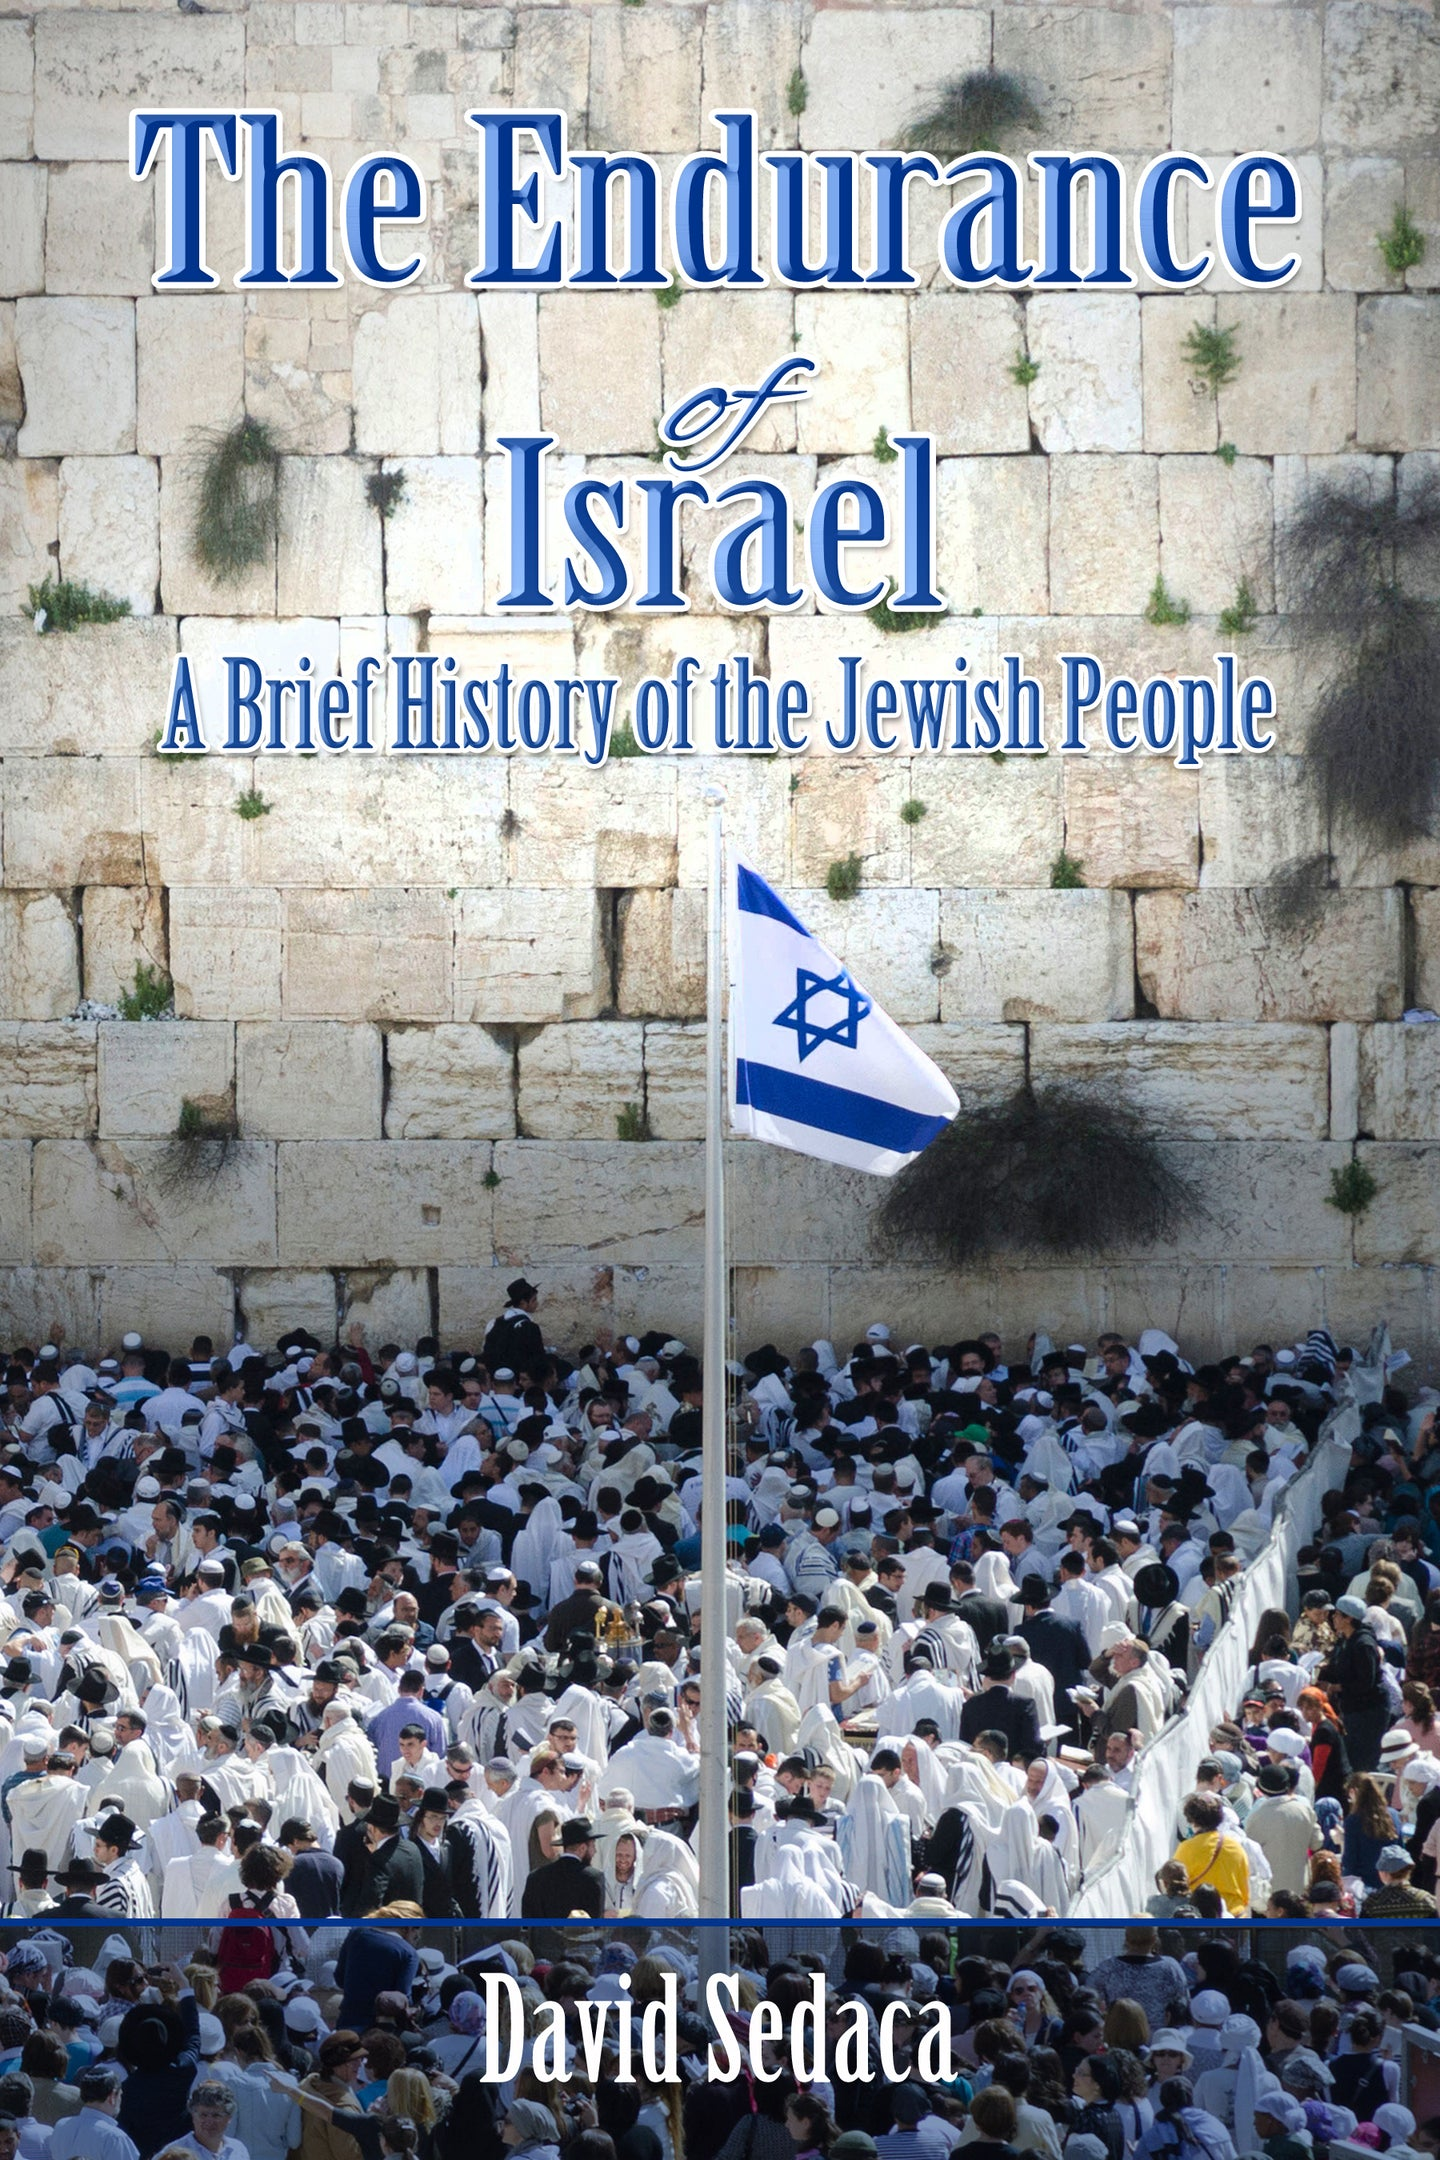 Endurance of Israel: A Brief History of the Jewish People by David Sedaca COMING SOON!